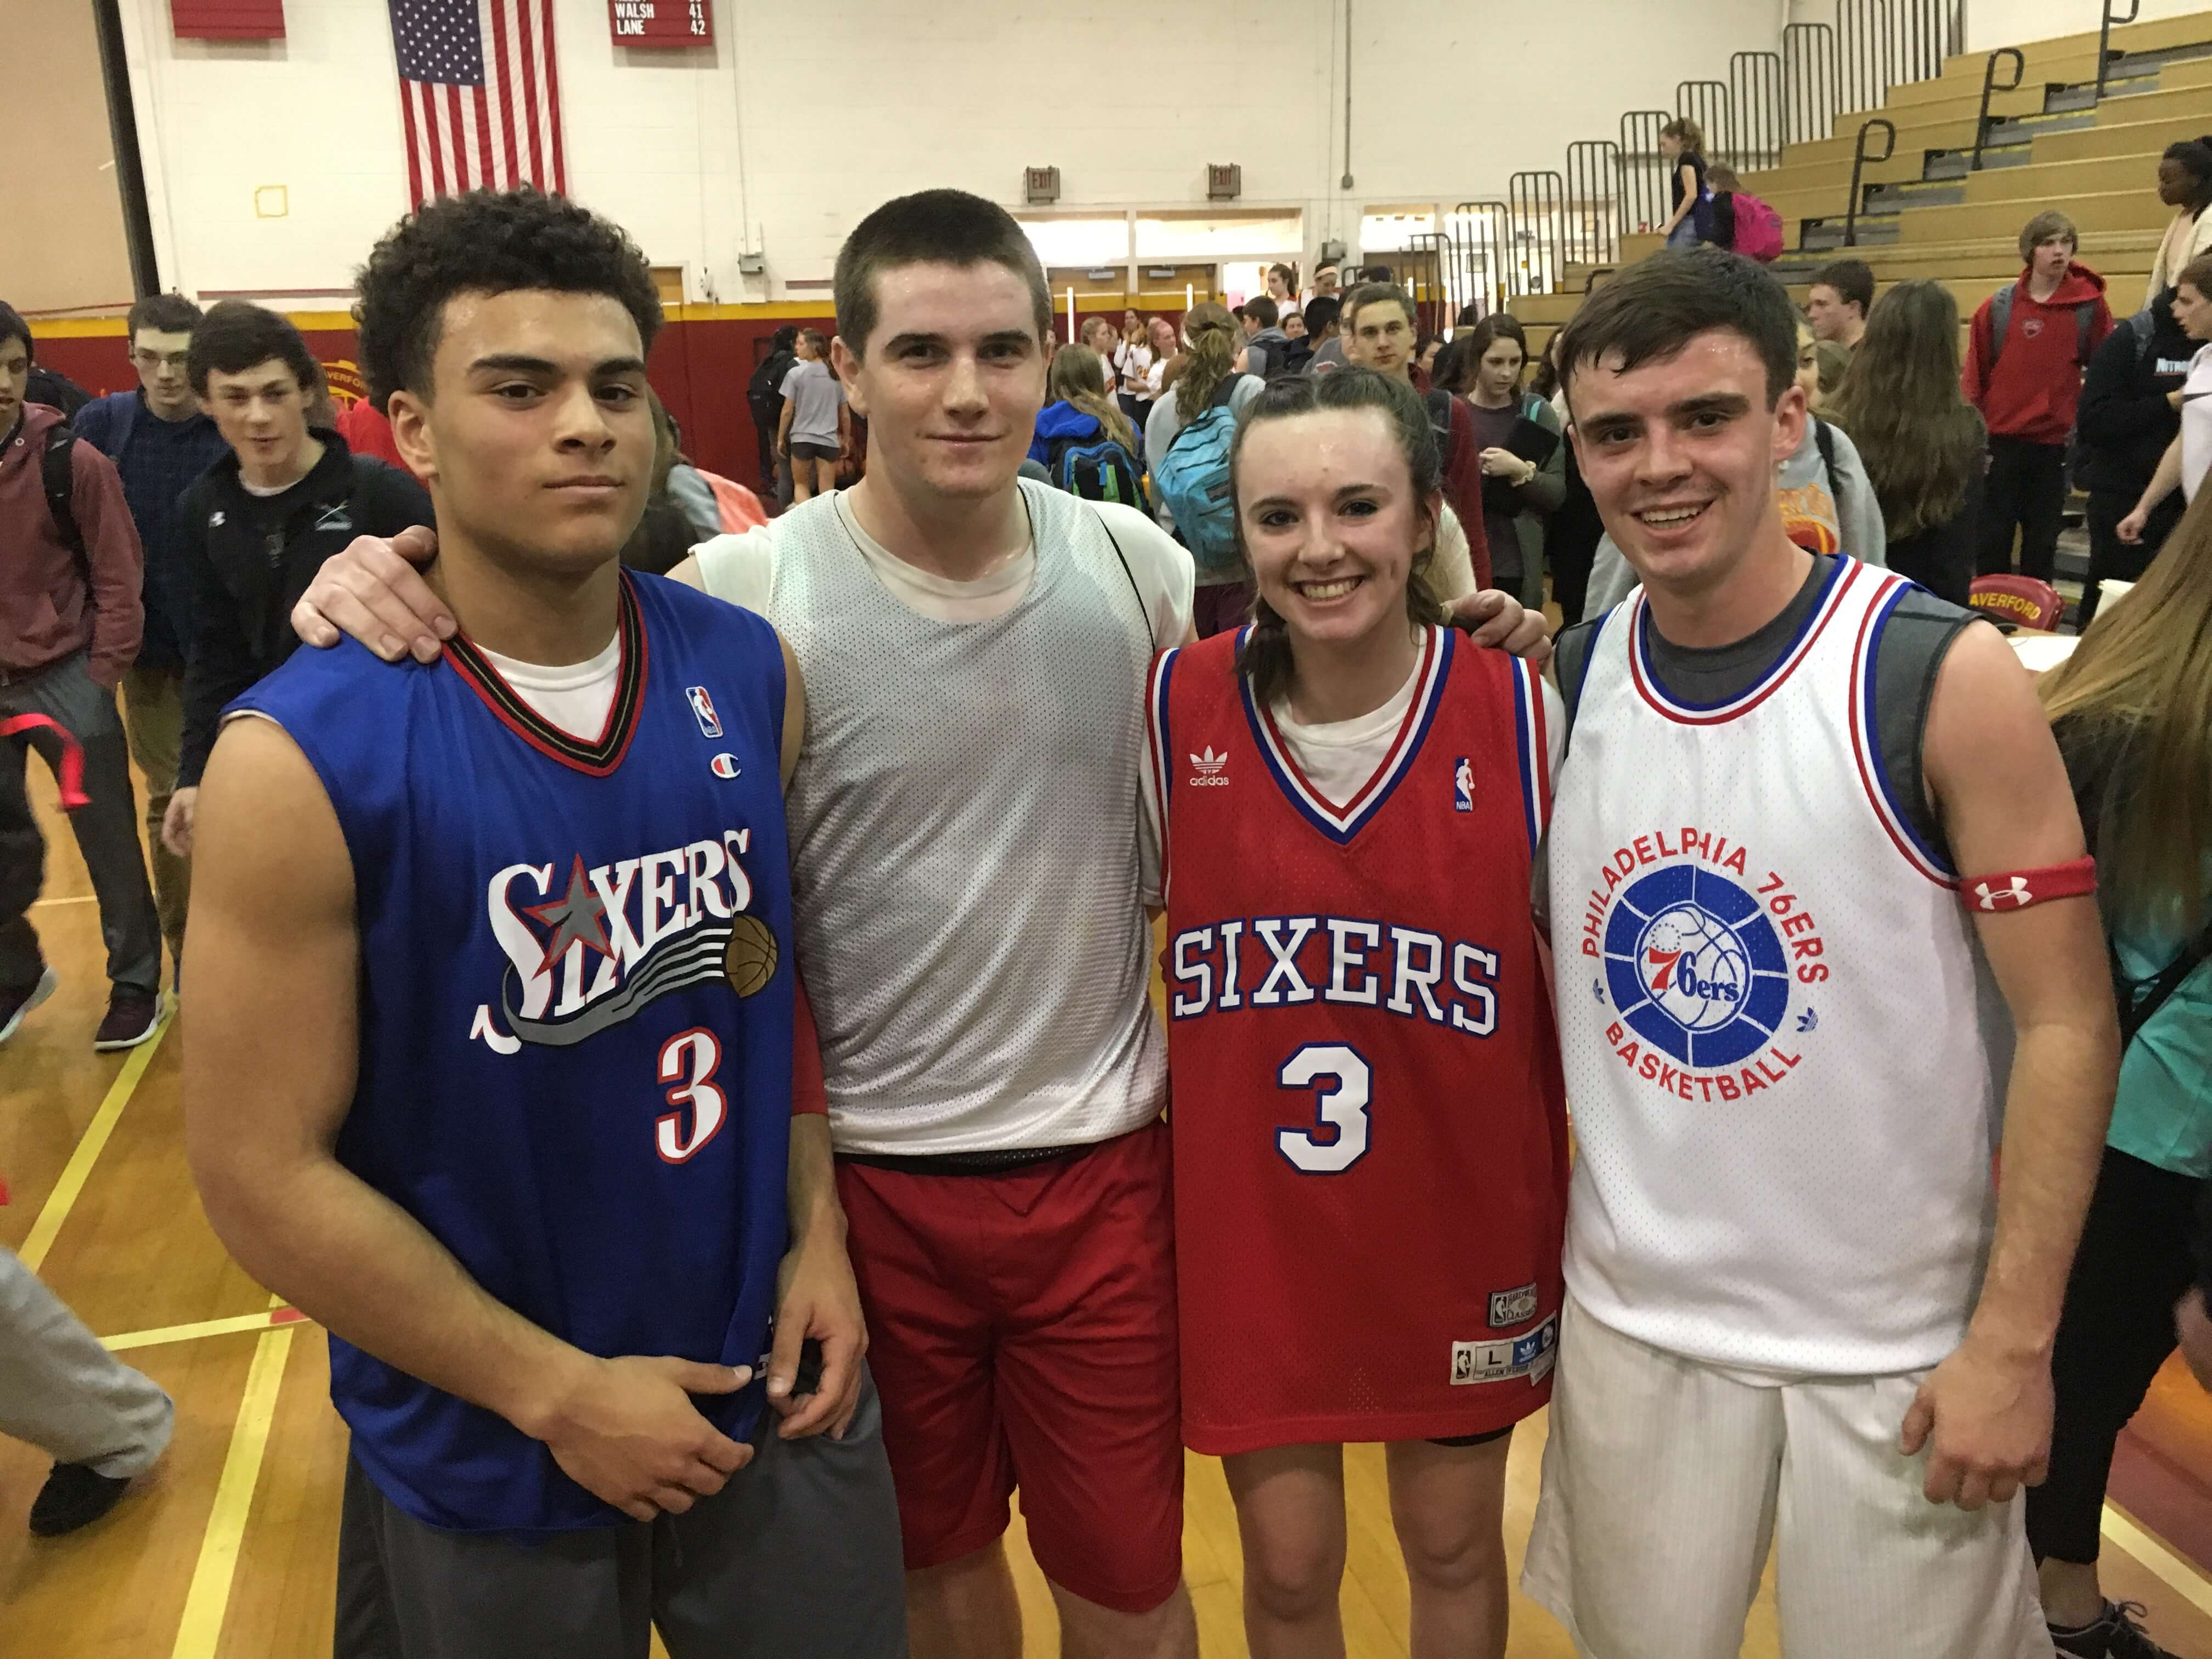 2017 winners, (from left) Trey Blair, Jack Farrell, Erin Kelly, and Steve Kelly.